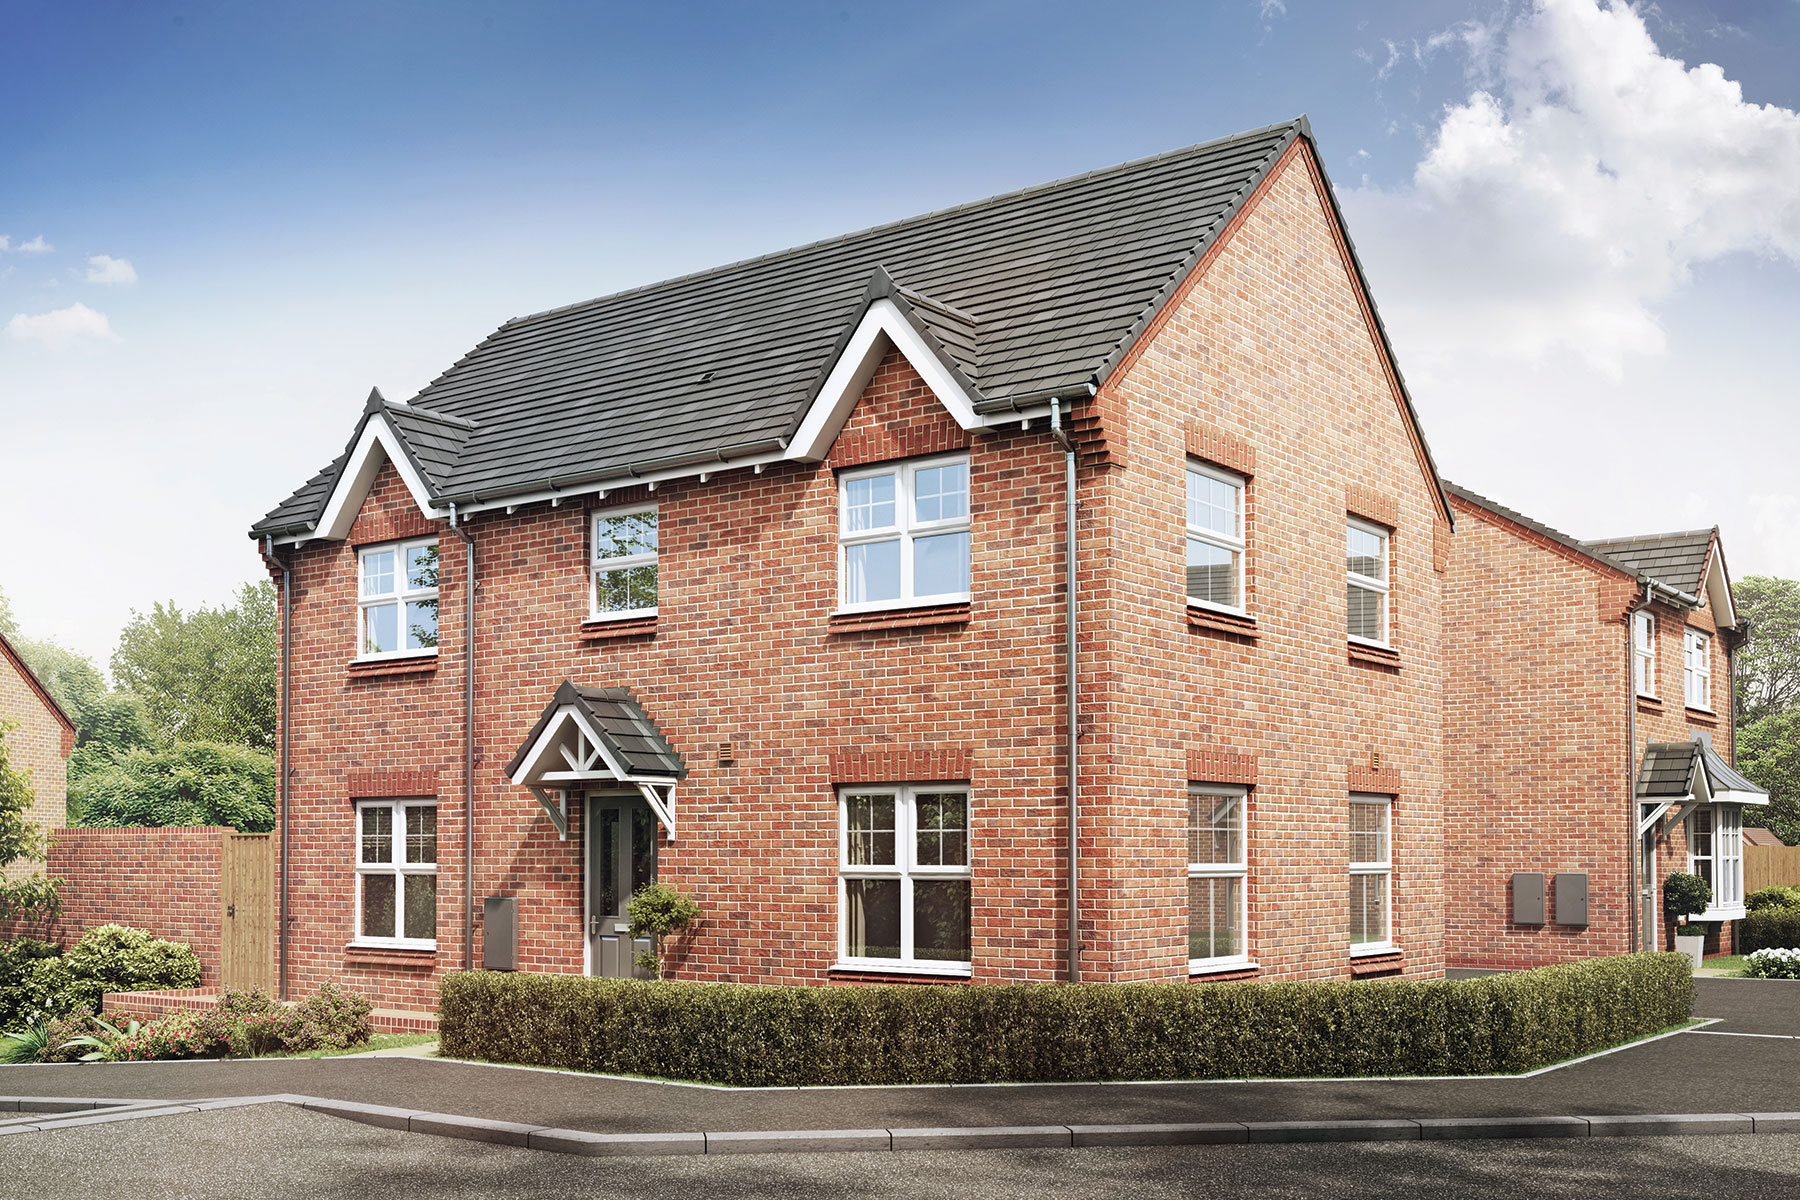 Kentdale-PT42-Clarendon-Road-Plot-53